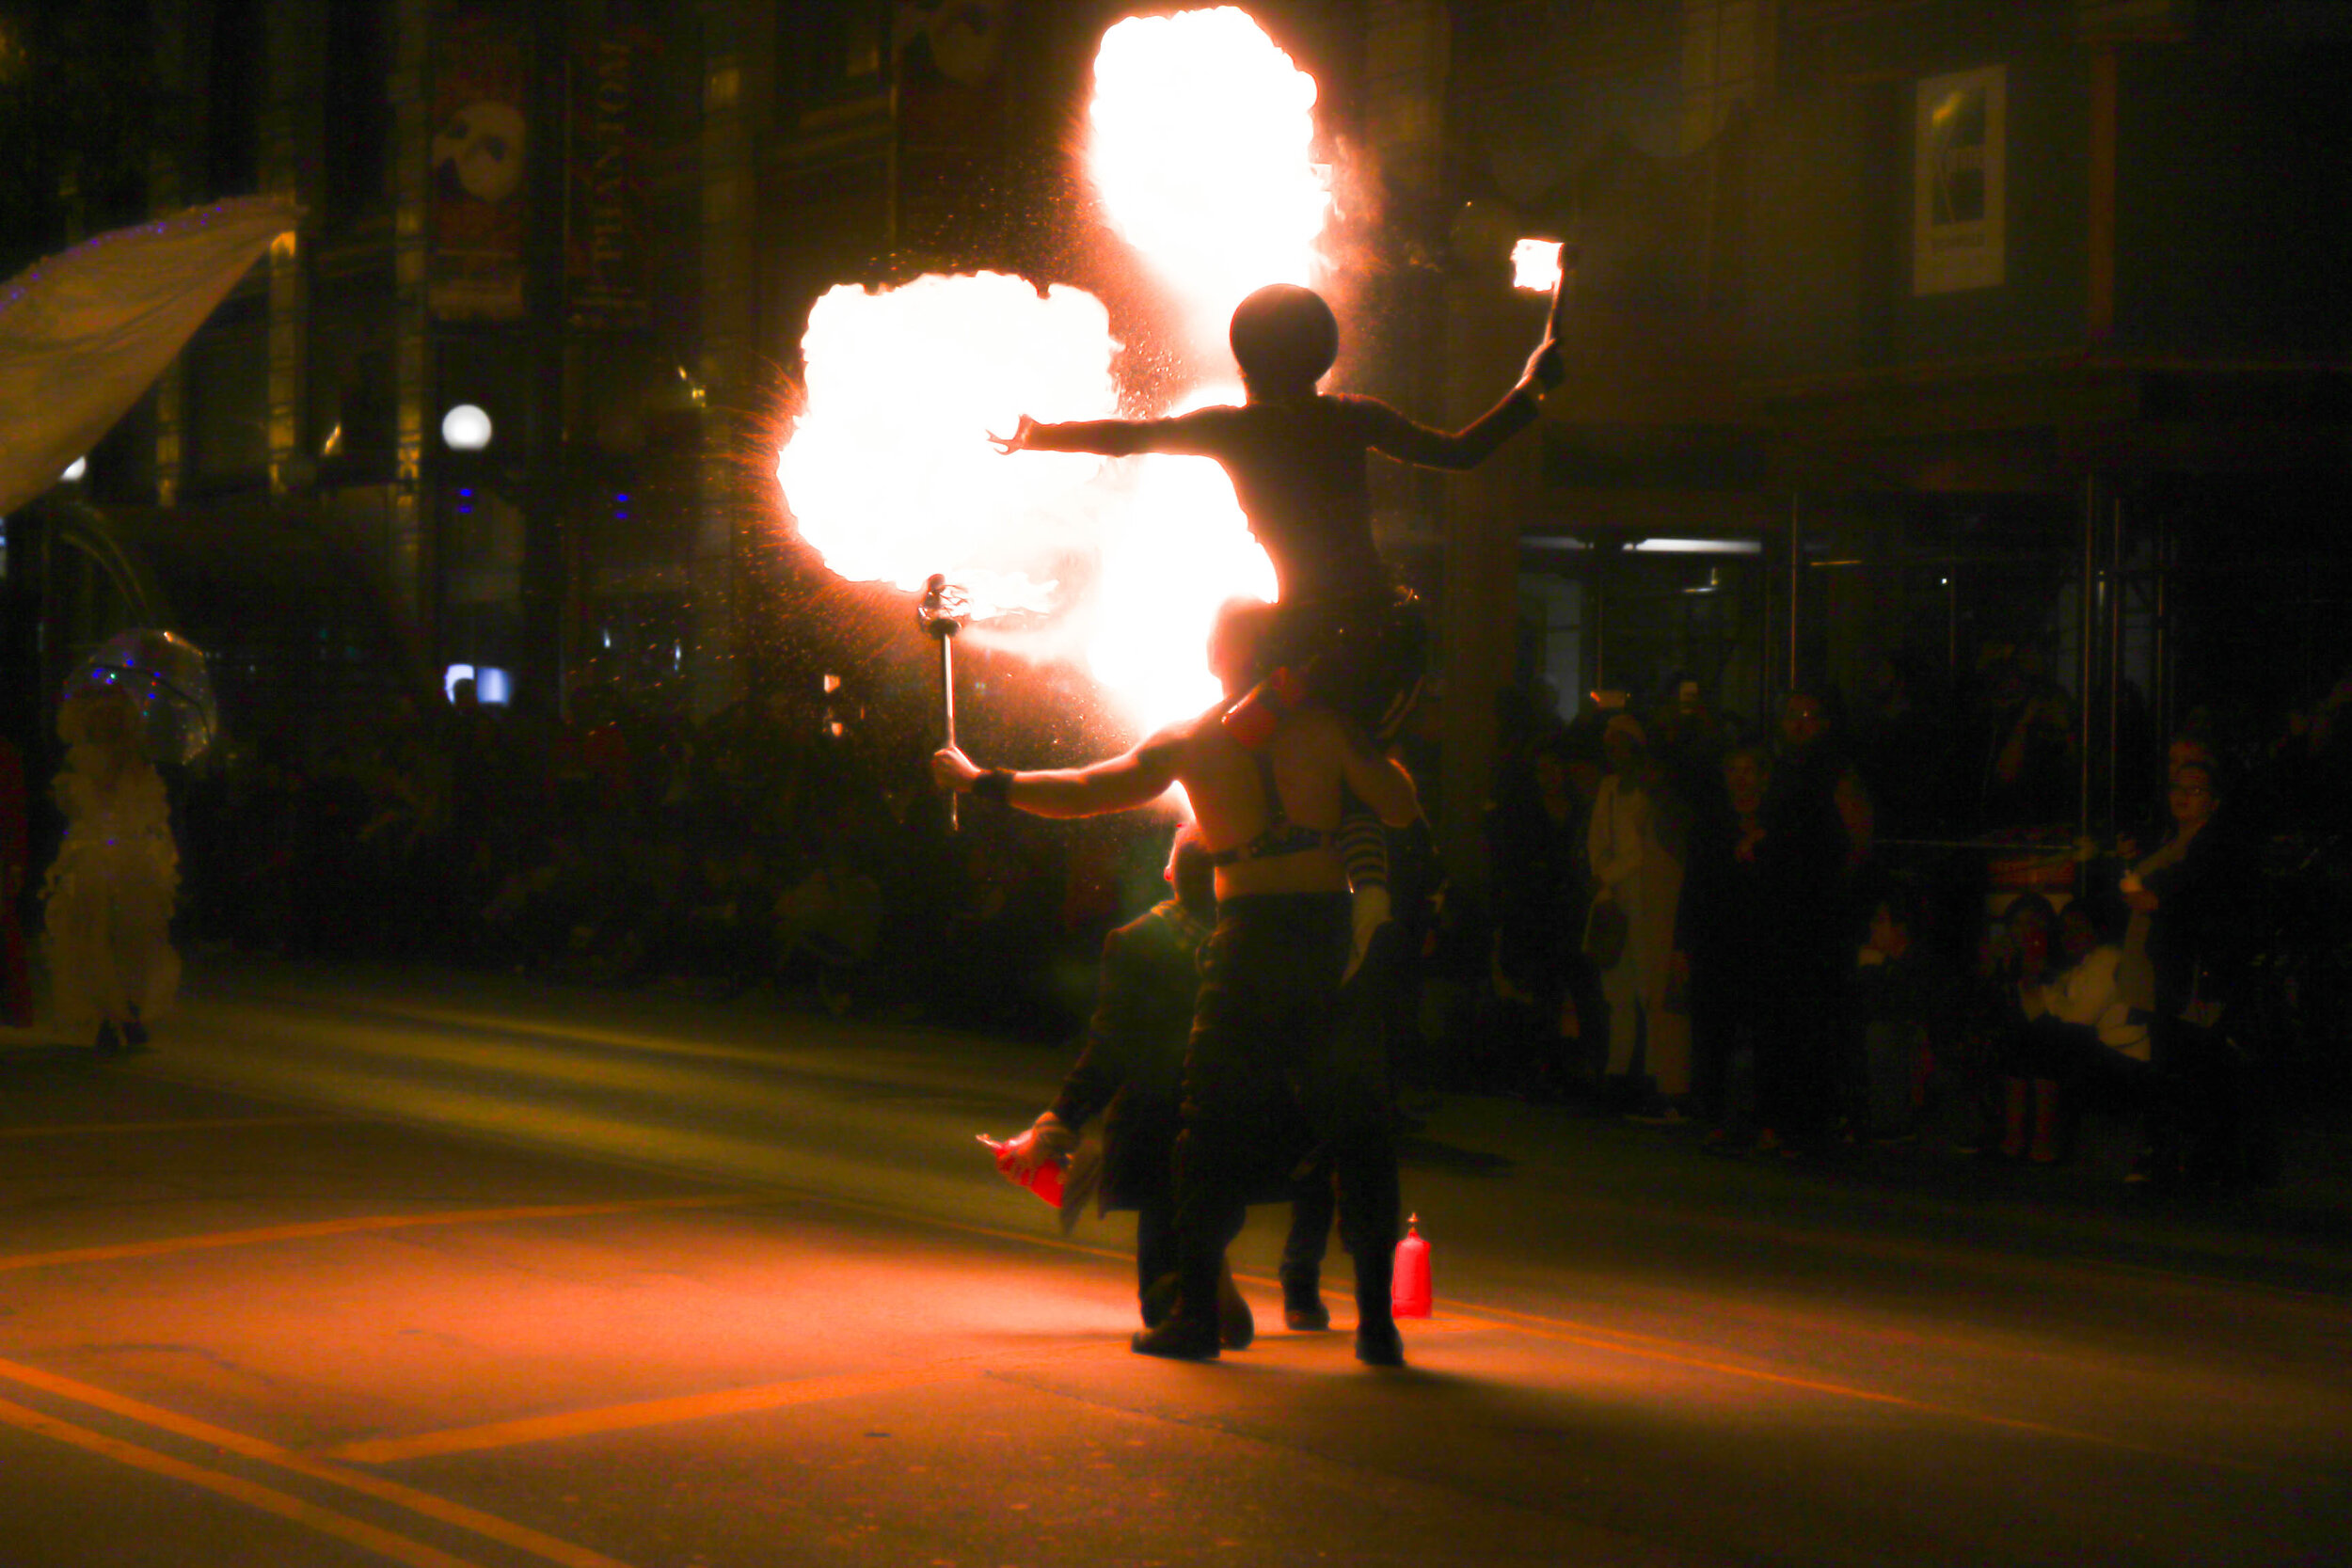 Two performers doing a fire-breathing demonstration at night during the parade.